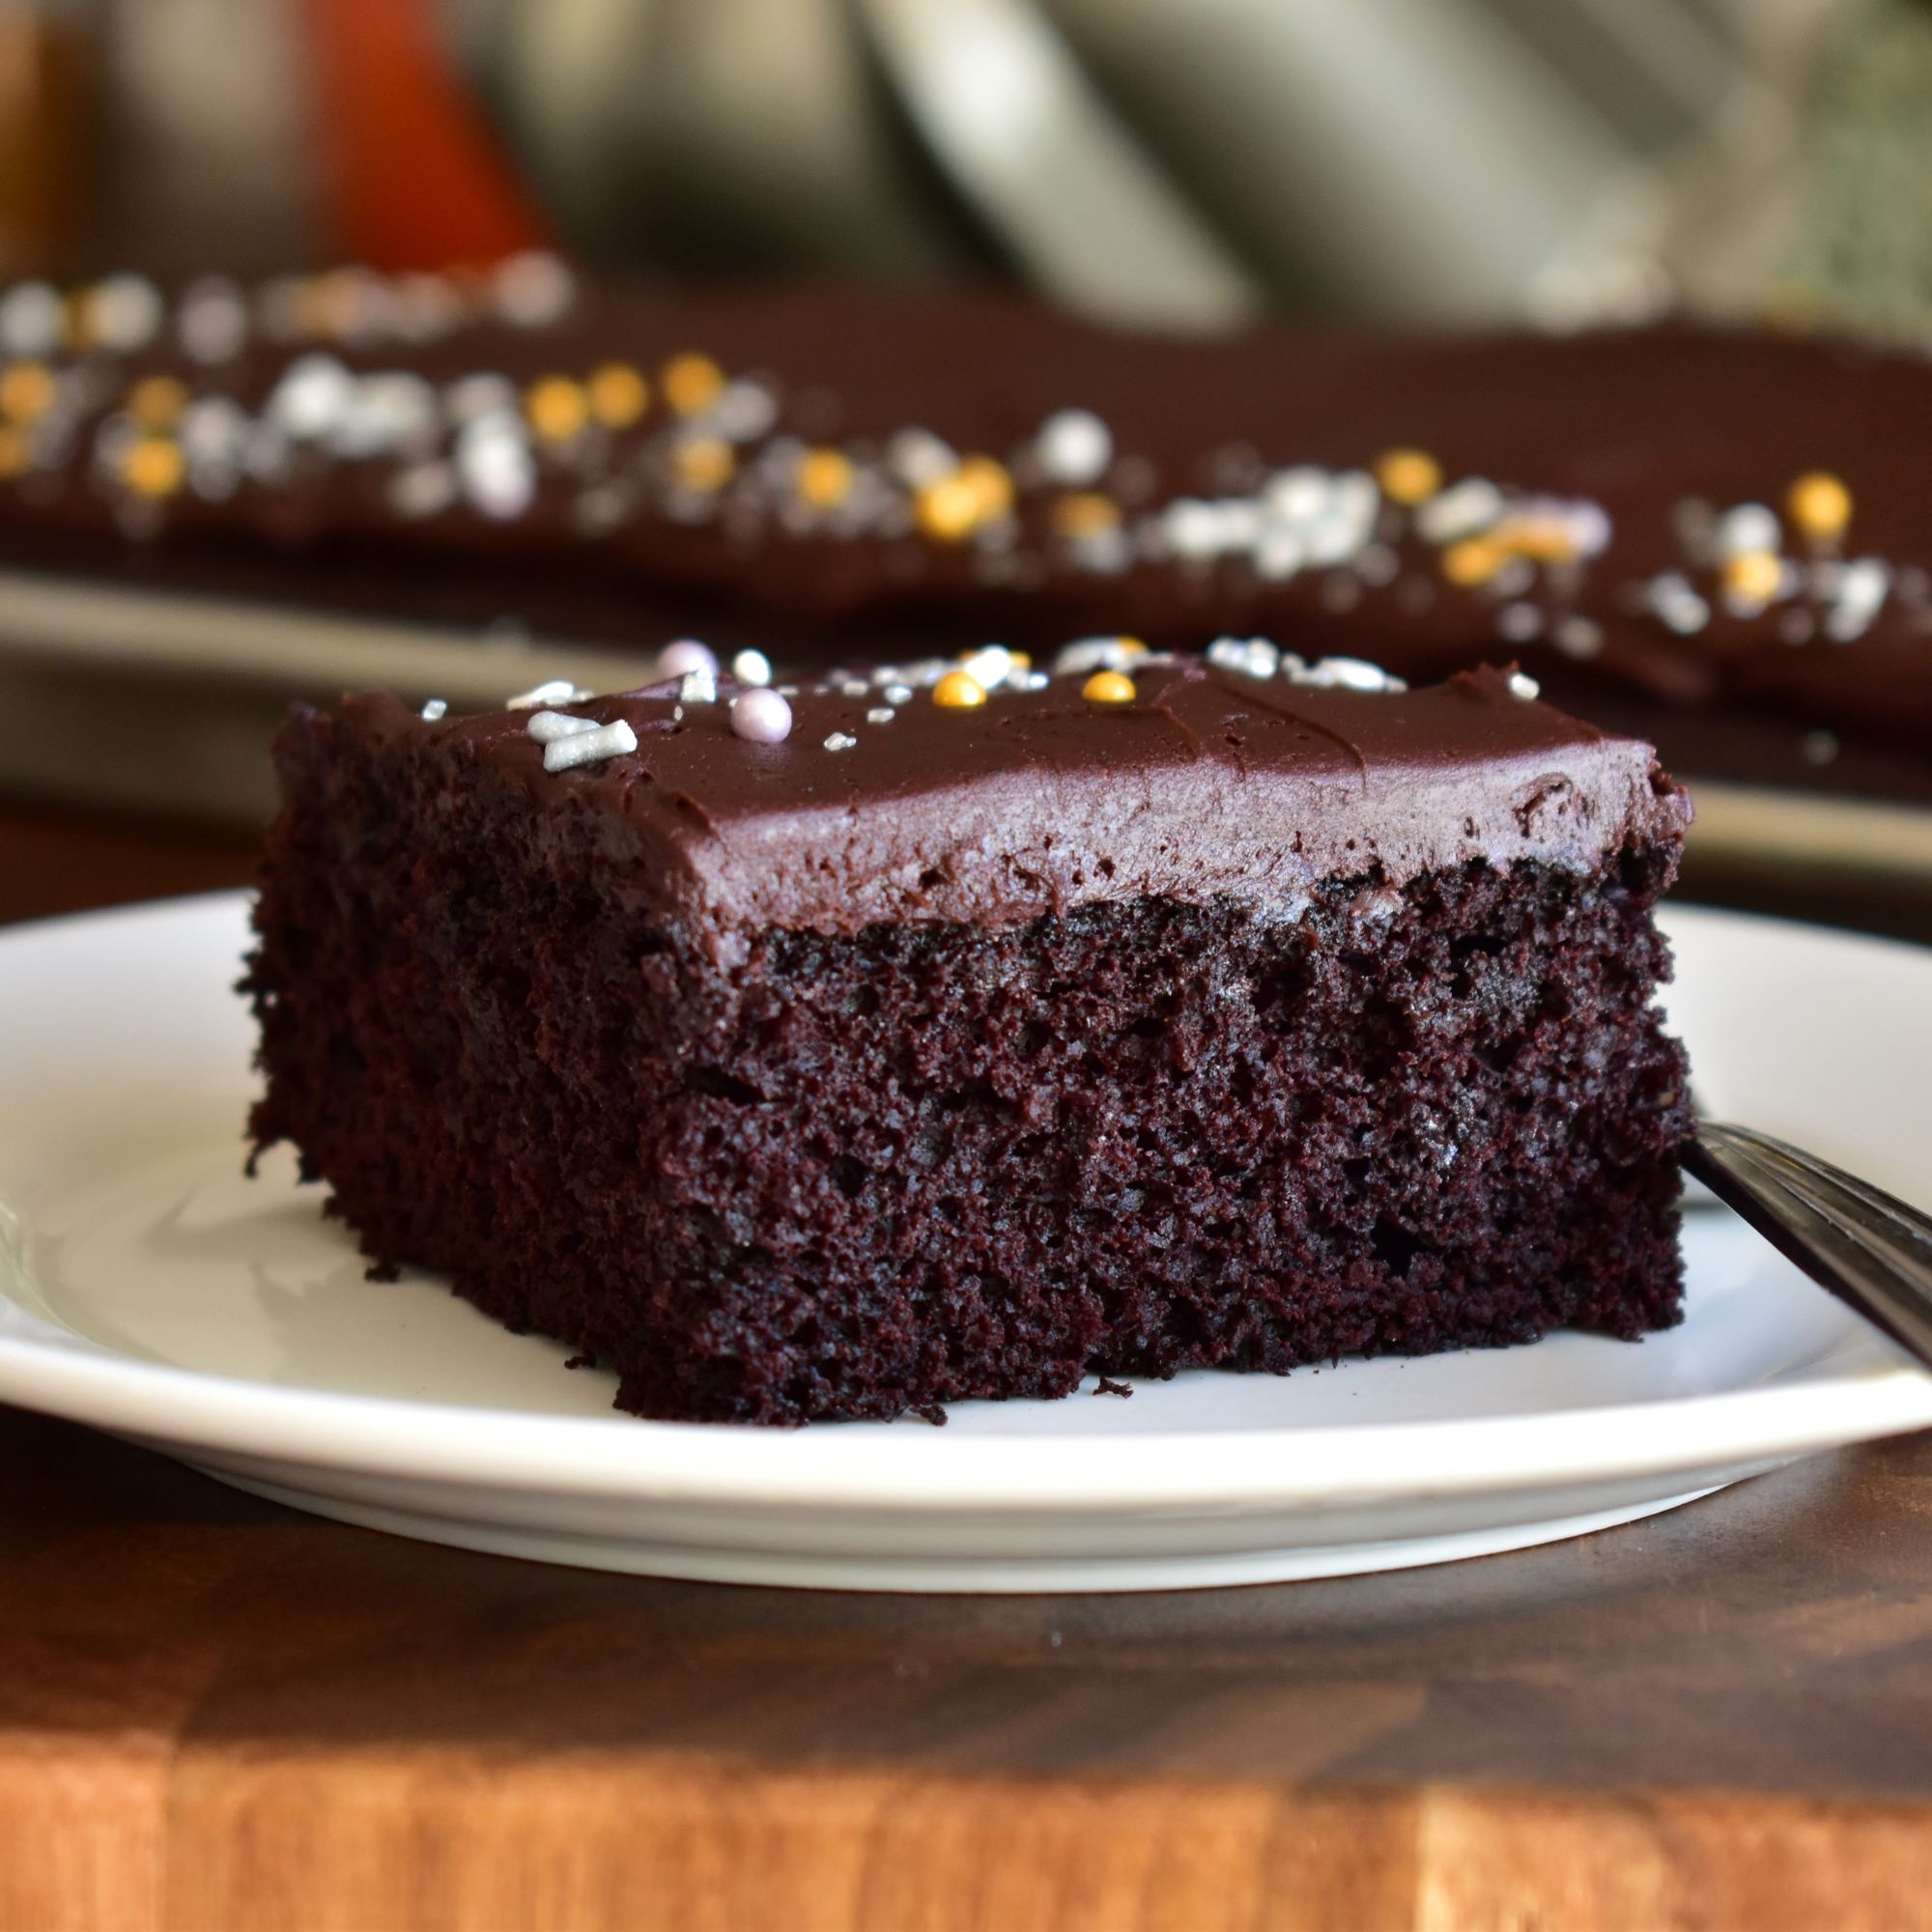 Dark Chocolate Sheet Cake with Dark Chocolate Frosting